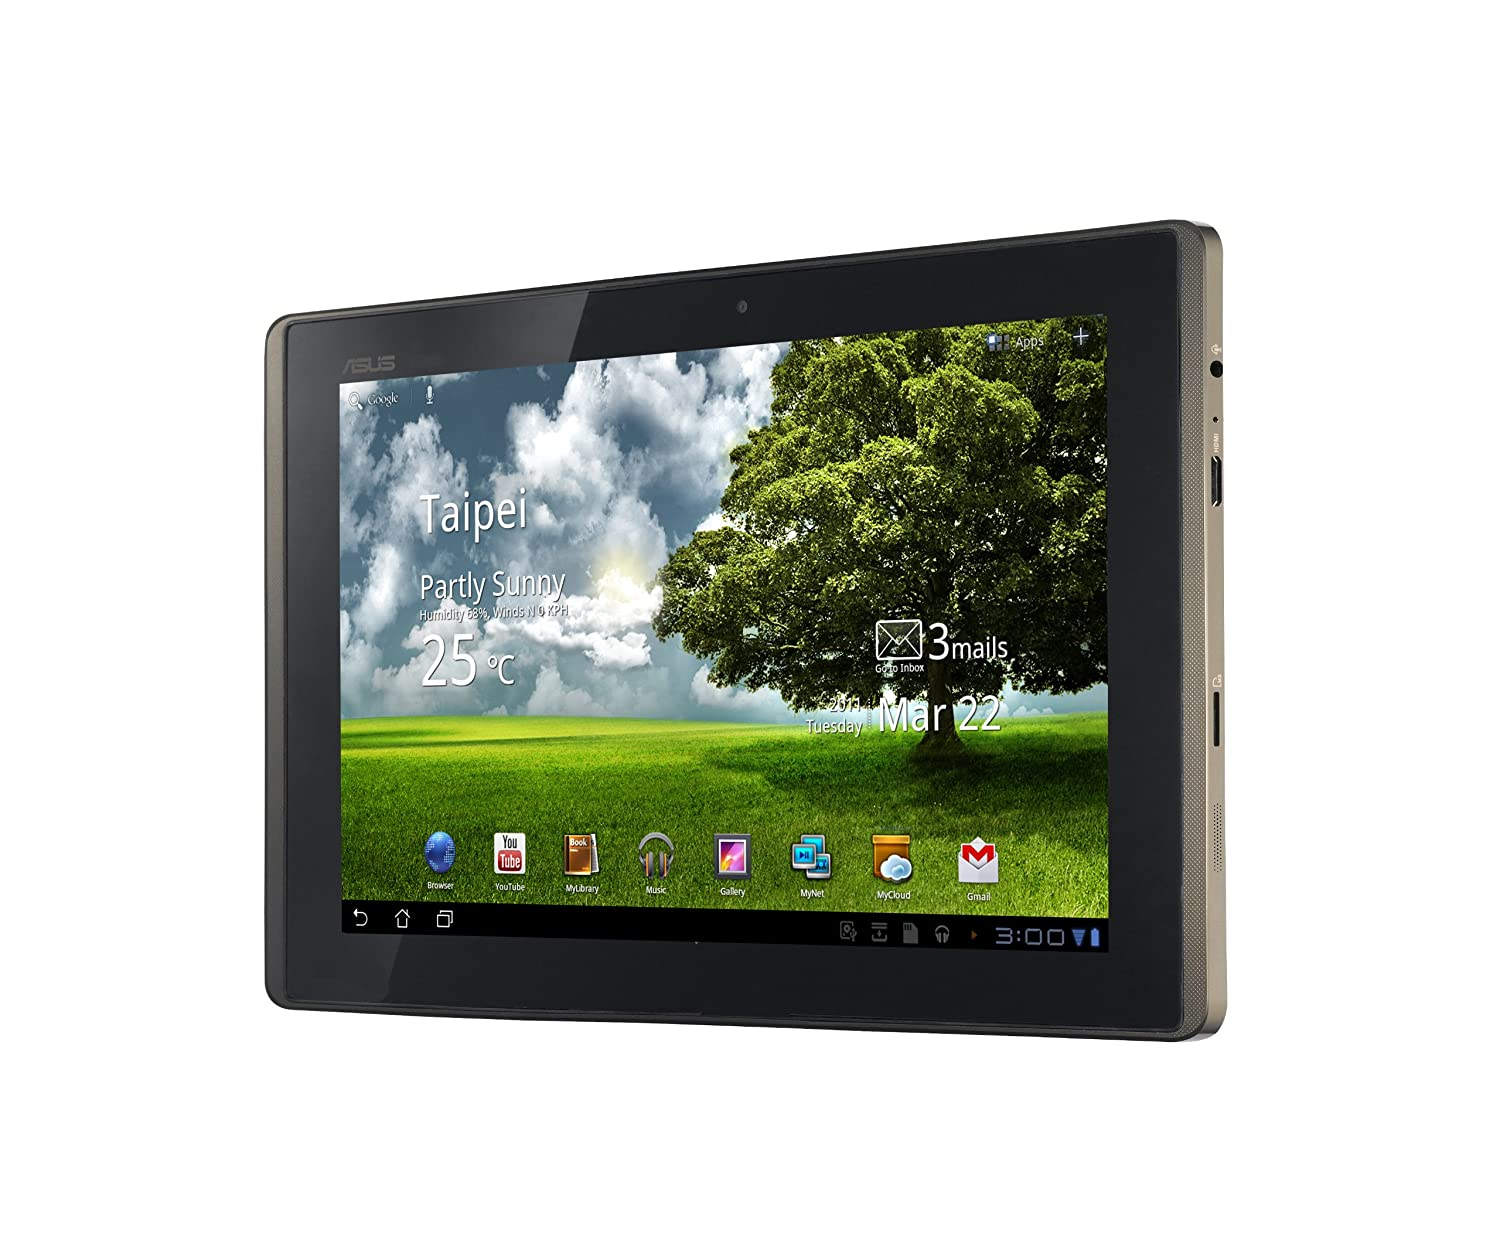 Amazon.com: Asus Transformer Tf101 10.1-inch Tablet: Computers ...